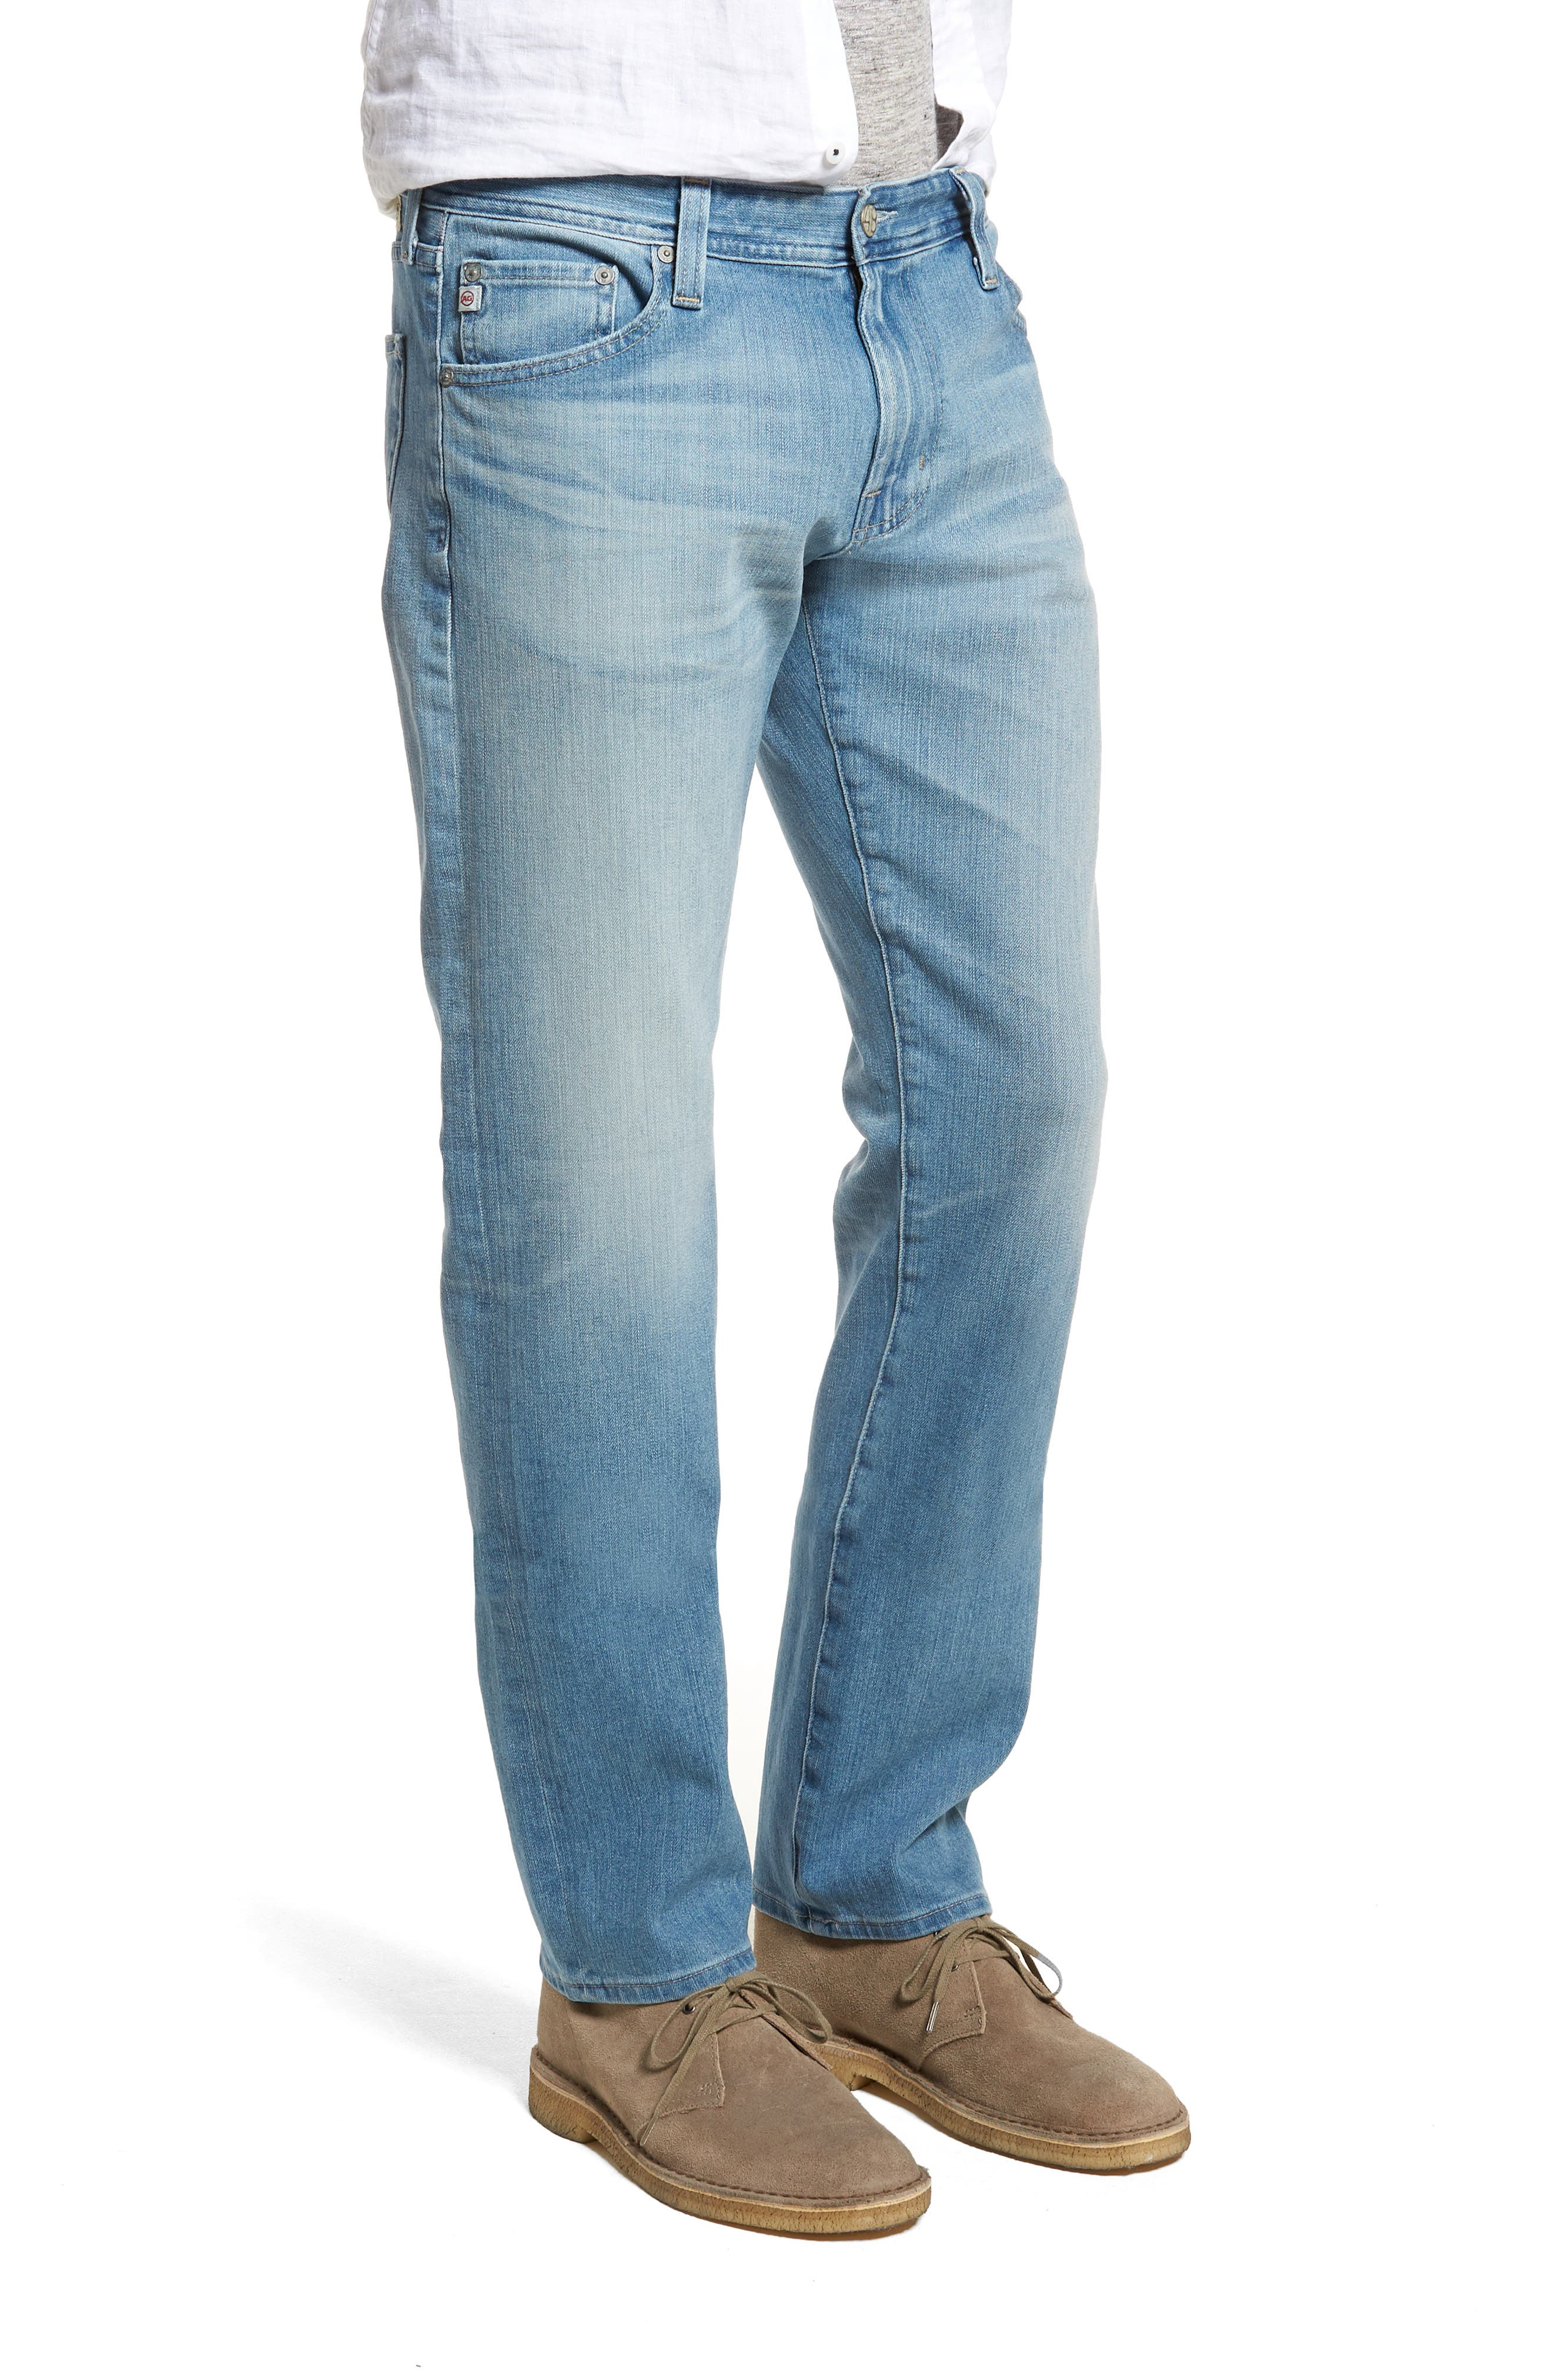 Graduate Slim Straight Leg Jeans,                             Alternate thumbnail 3, color,                             19 Years Channel